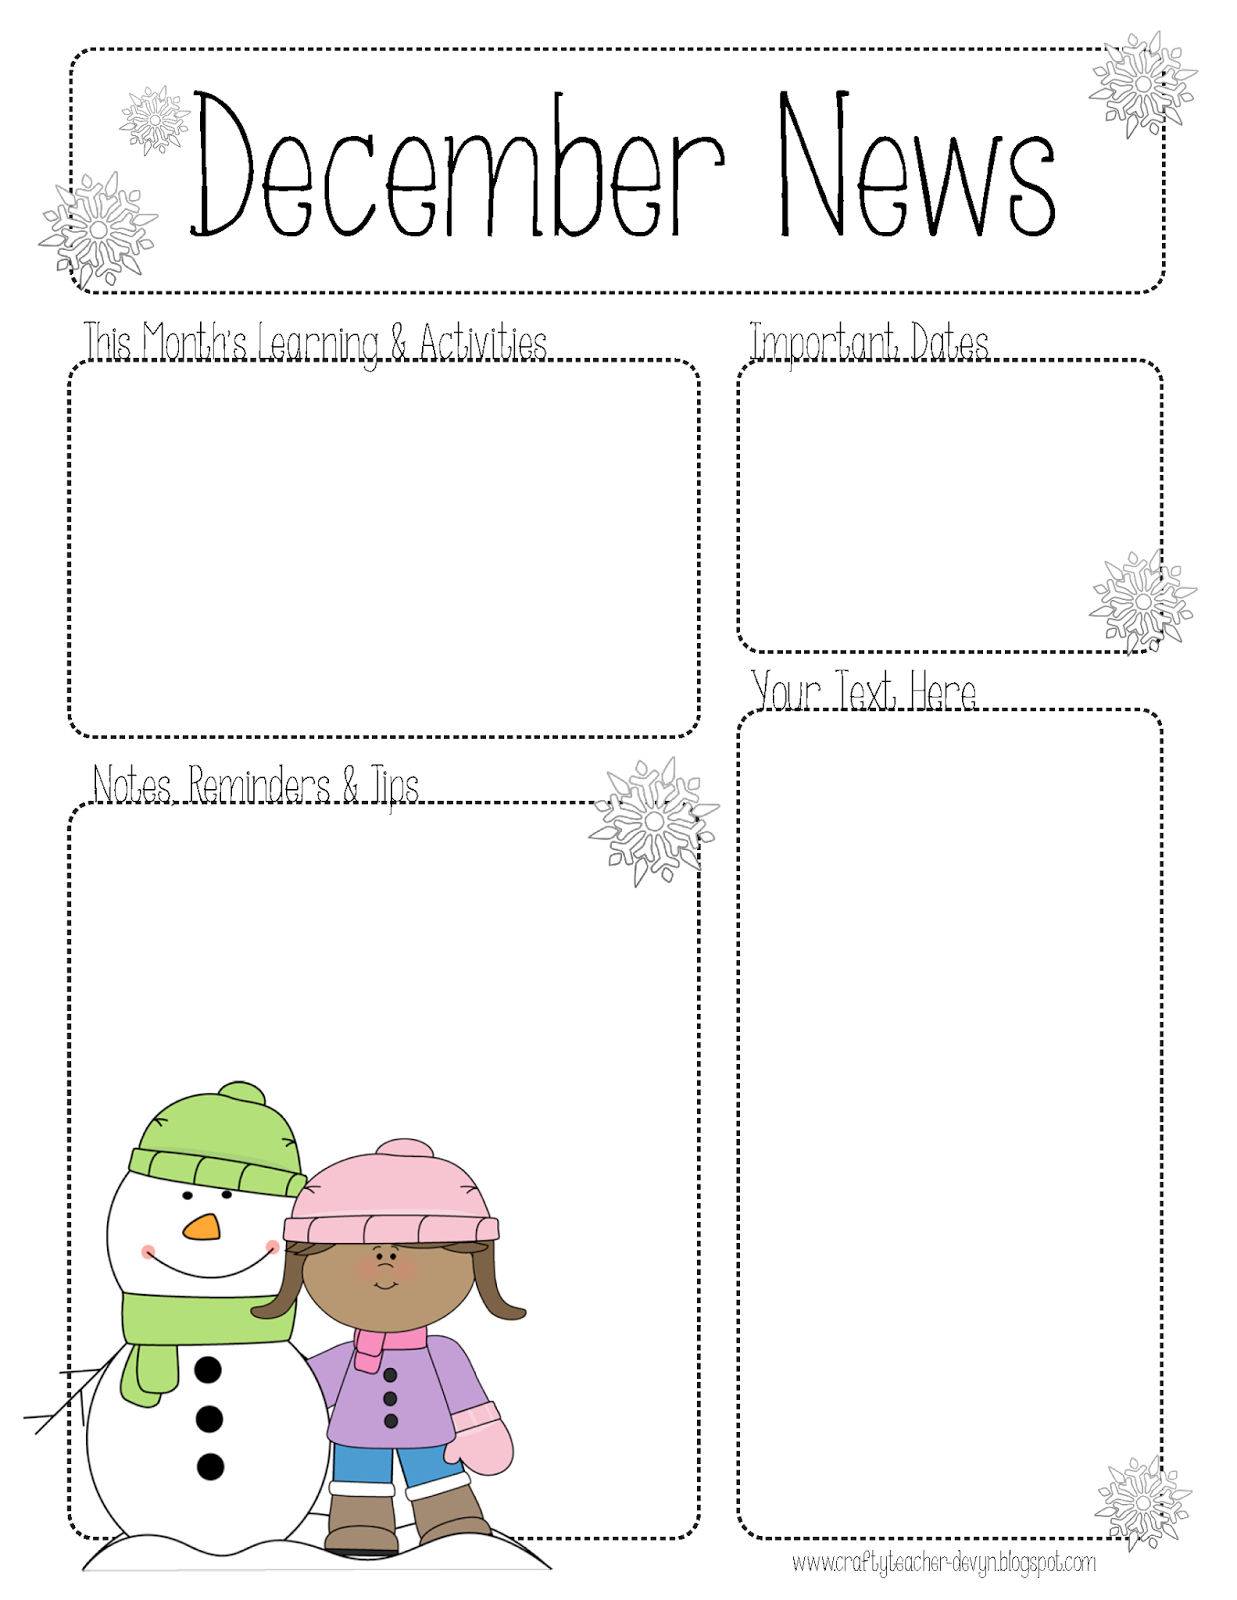 NewsletterDecember Free Template For A Pre K Newsletter on free newsletter templates downloads, free printable classroom newsletter templates, free daycare newsletter templates, free downloadable classroom newsletters, free printable blank newsletter templates, free pre k calendar, free printable school newsletter templates, free preschool templates, free printable teacher newsletter templates, free pre k lesson plans,